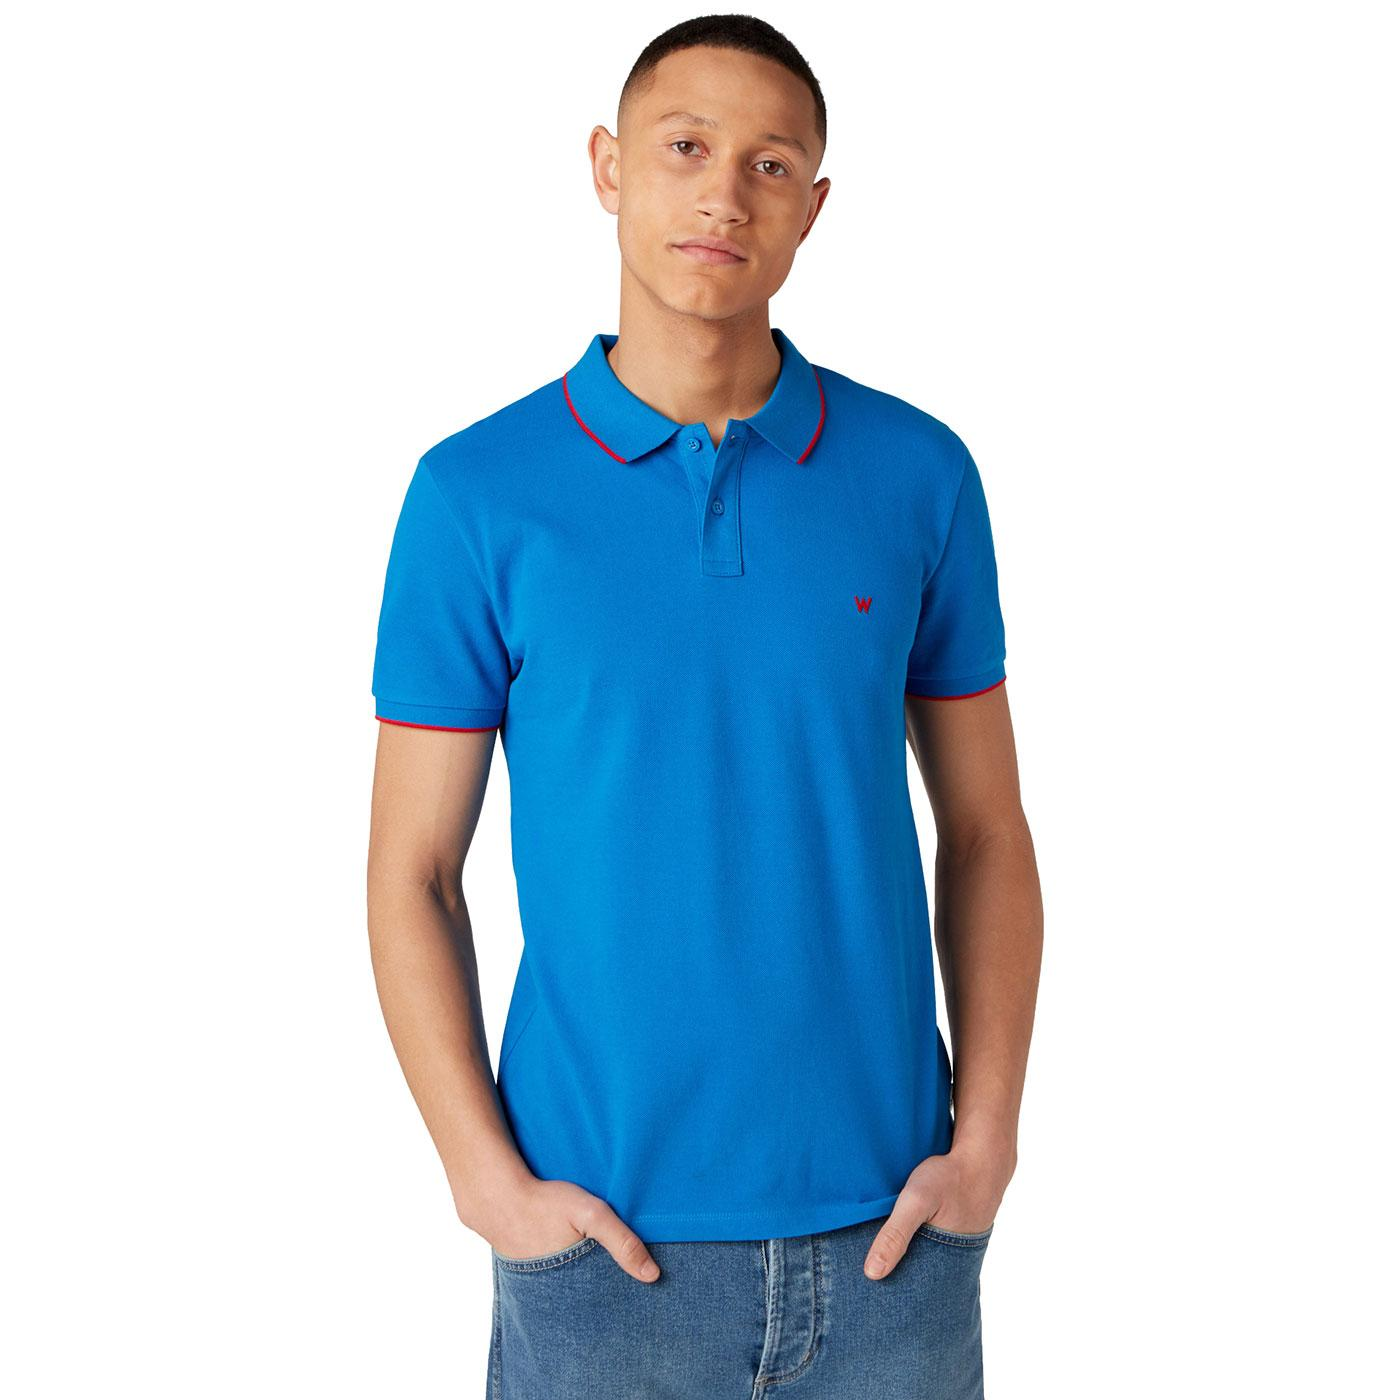 WRANGLER Men's Retro Tipped Pique Polo Shirt BLUE